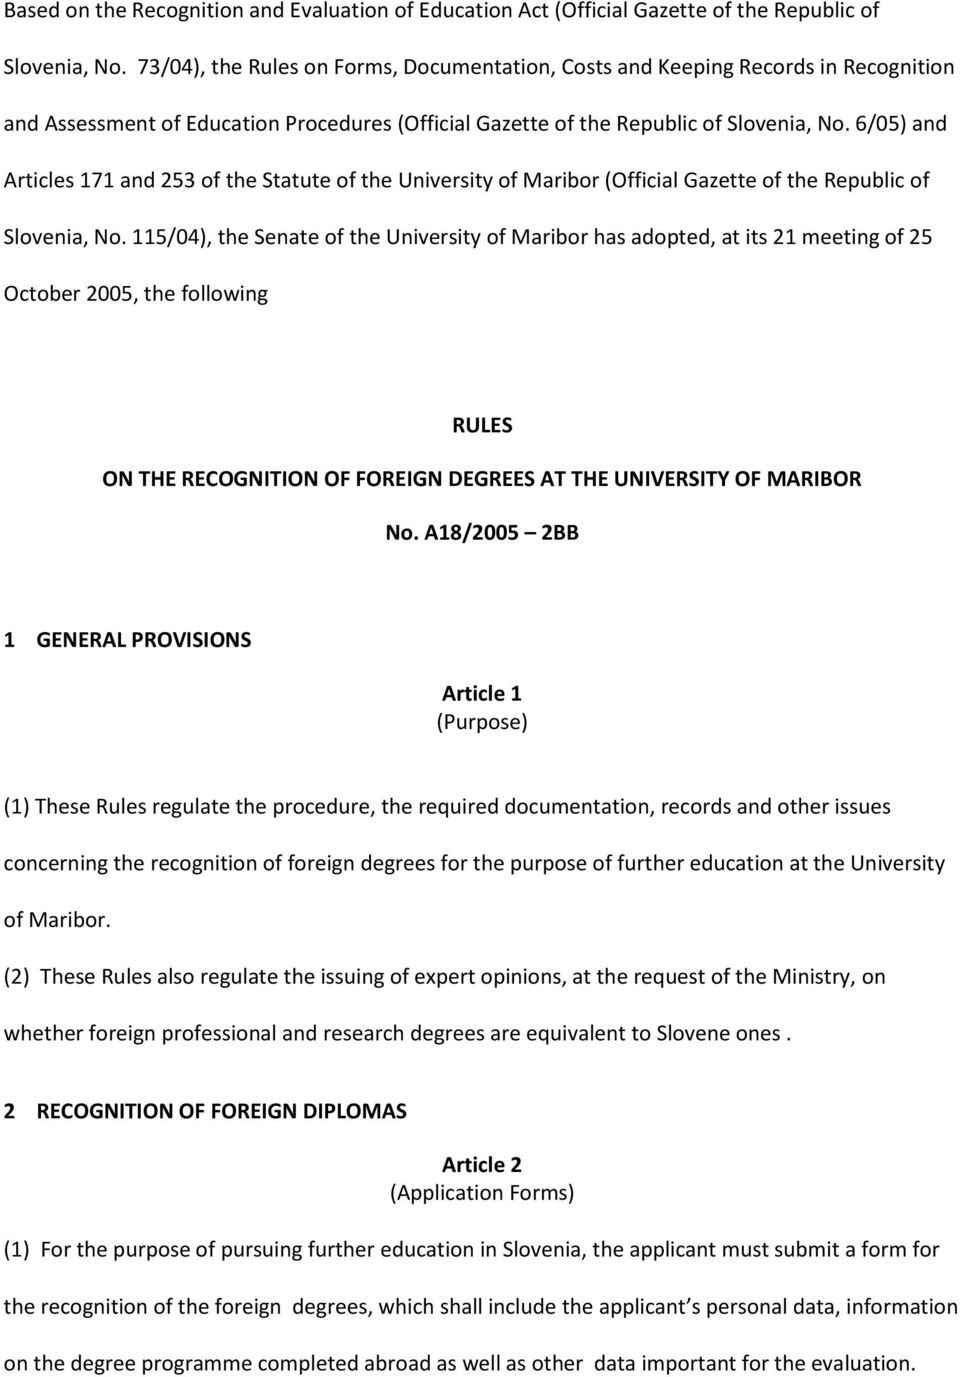 6/05) and Articles 171 and 253 of the Statute of the University of Maribor (Official Gazette of the Republic of Slovenia, No.